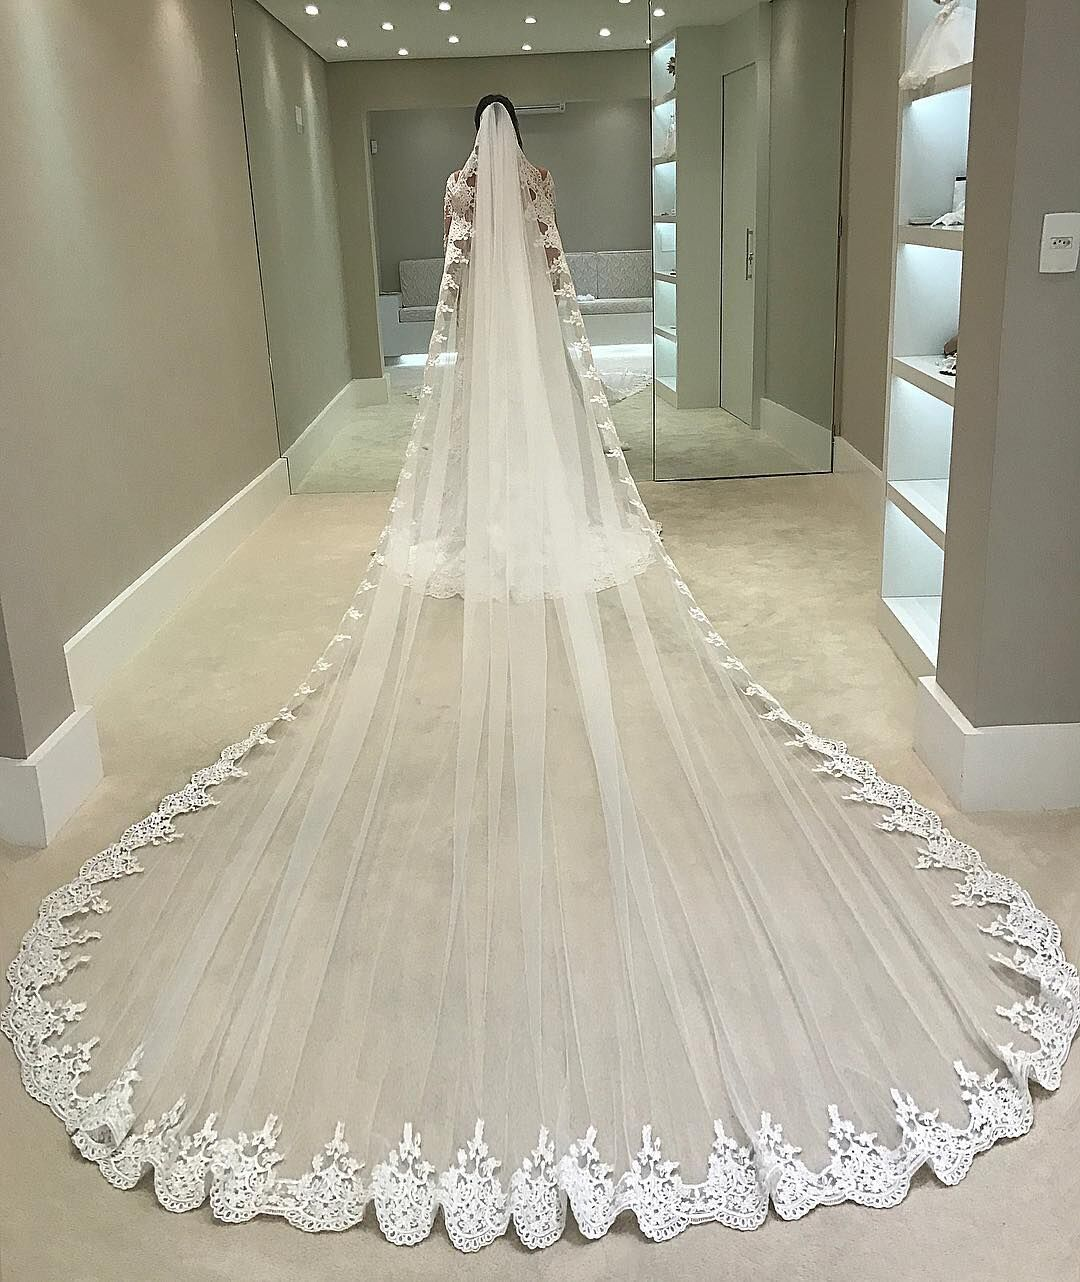 Lace Edge Appliques Bridal Veils,Luxury Bridal Veils,Cathedral Train One Layer Veils,Veils with Comb